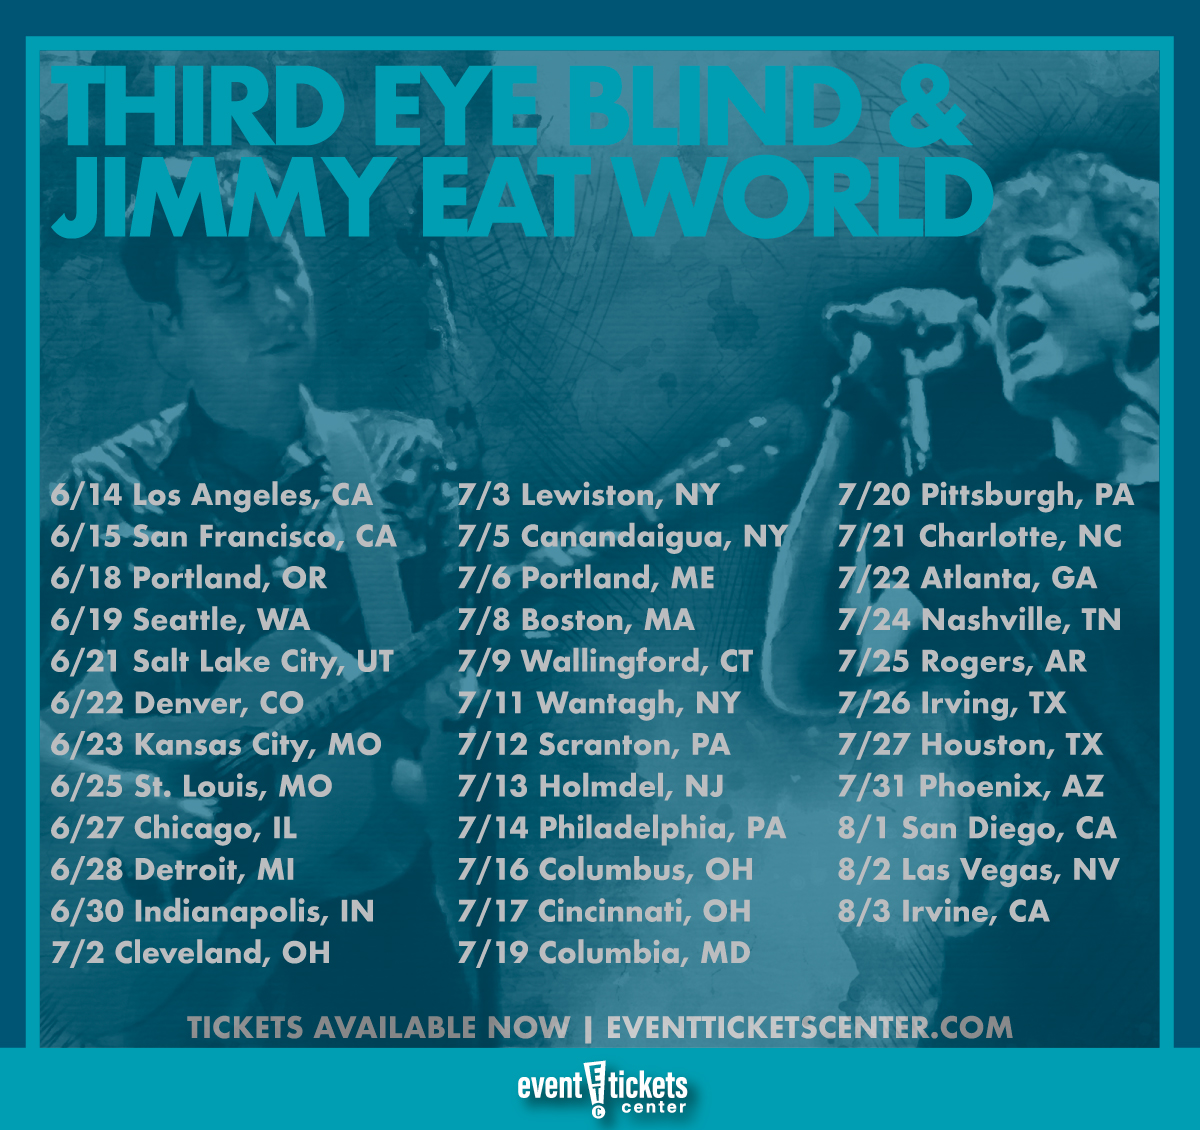 jimmy eat world and third eye blind tour dates